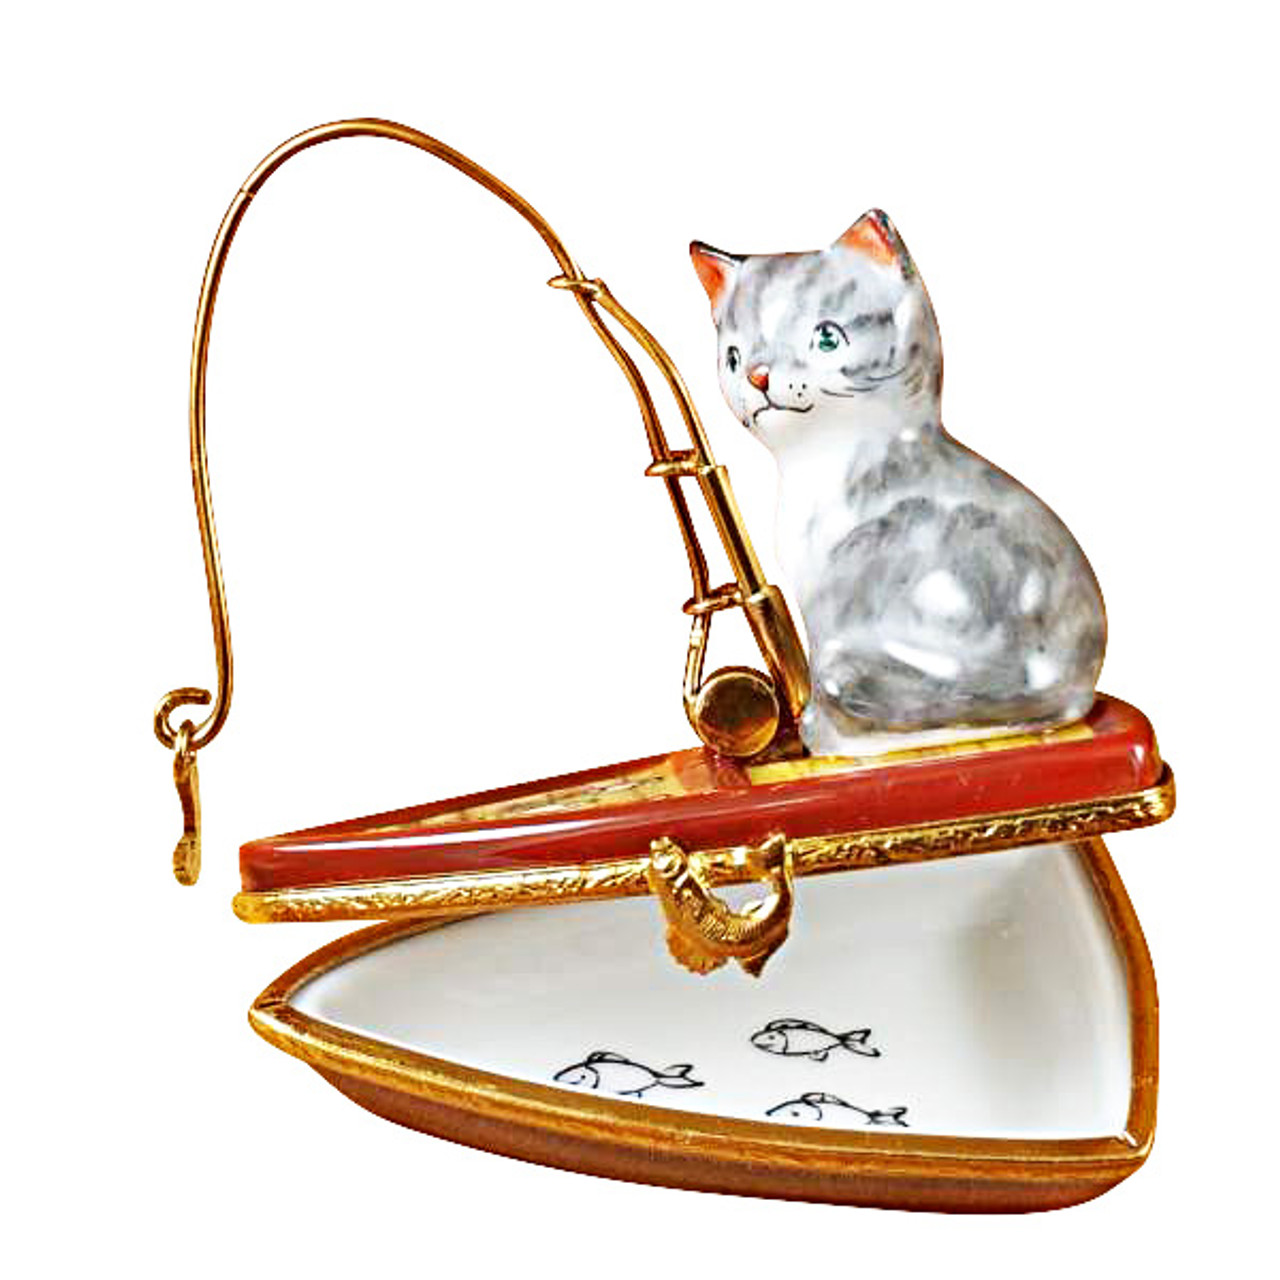 Limoges Imports Cat Fishing In Boat Limoges Box